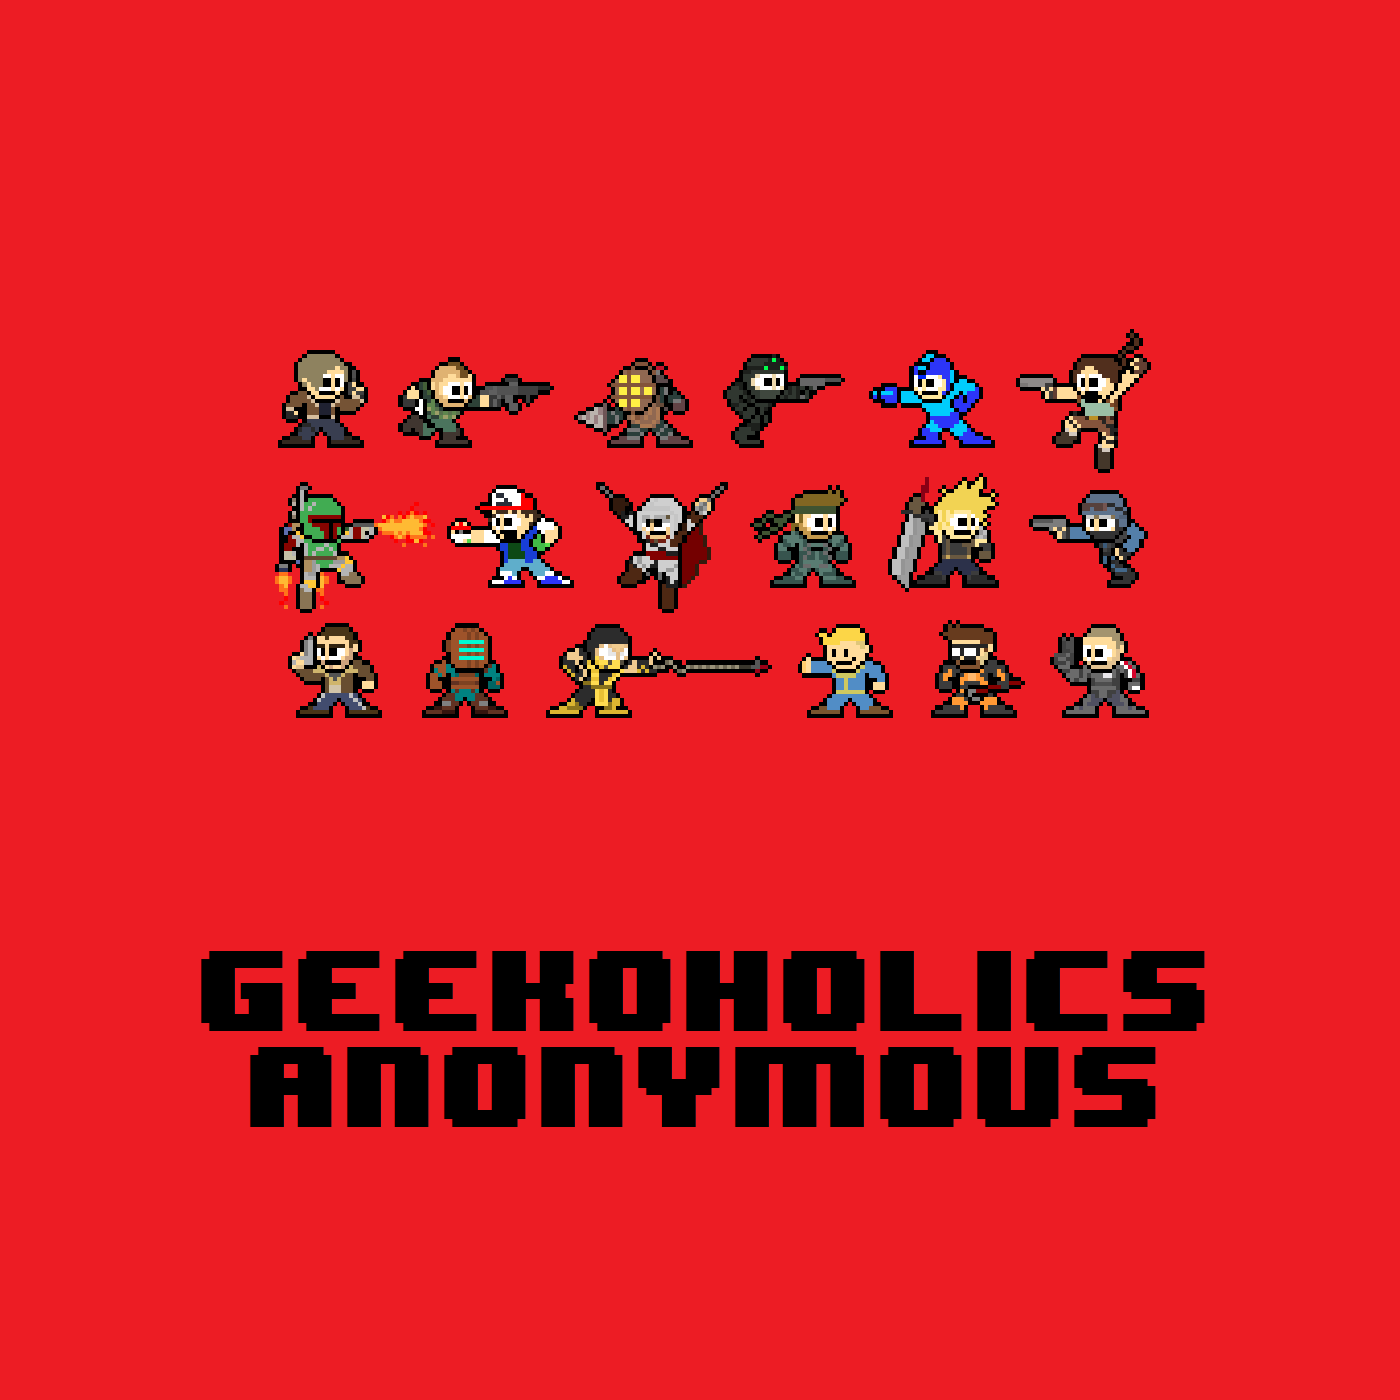 Valhiem, BlizzConline, PlayStation VR, and more - Geekoholics Anonymous Podcast 294 show art